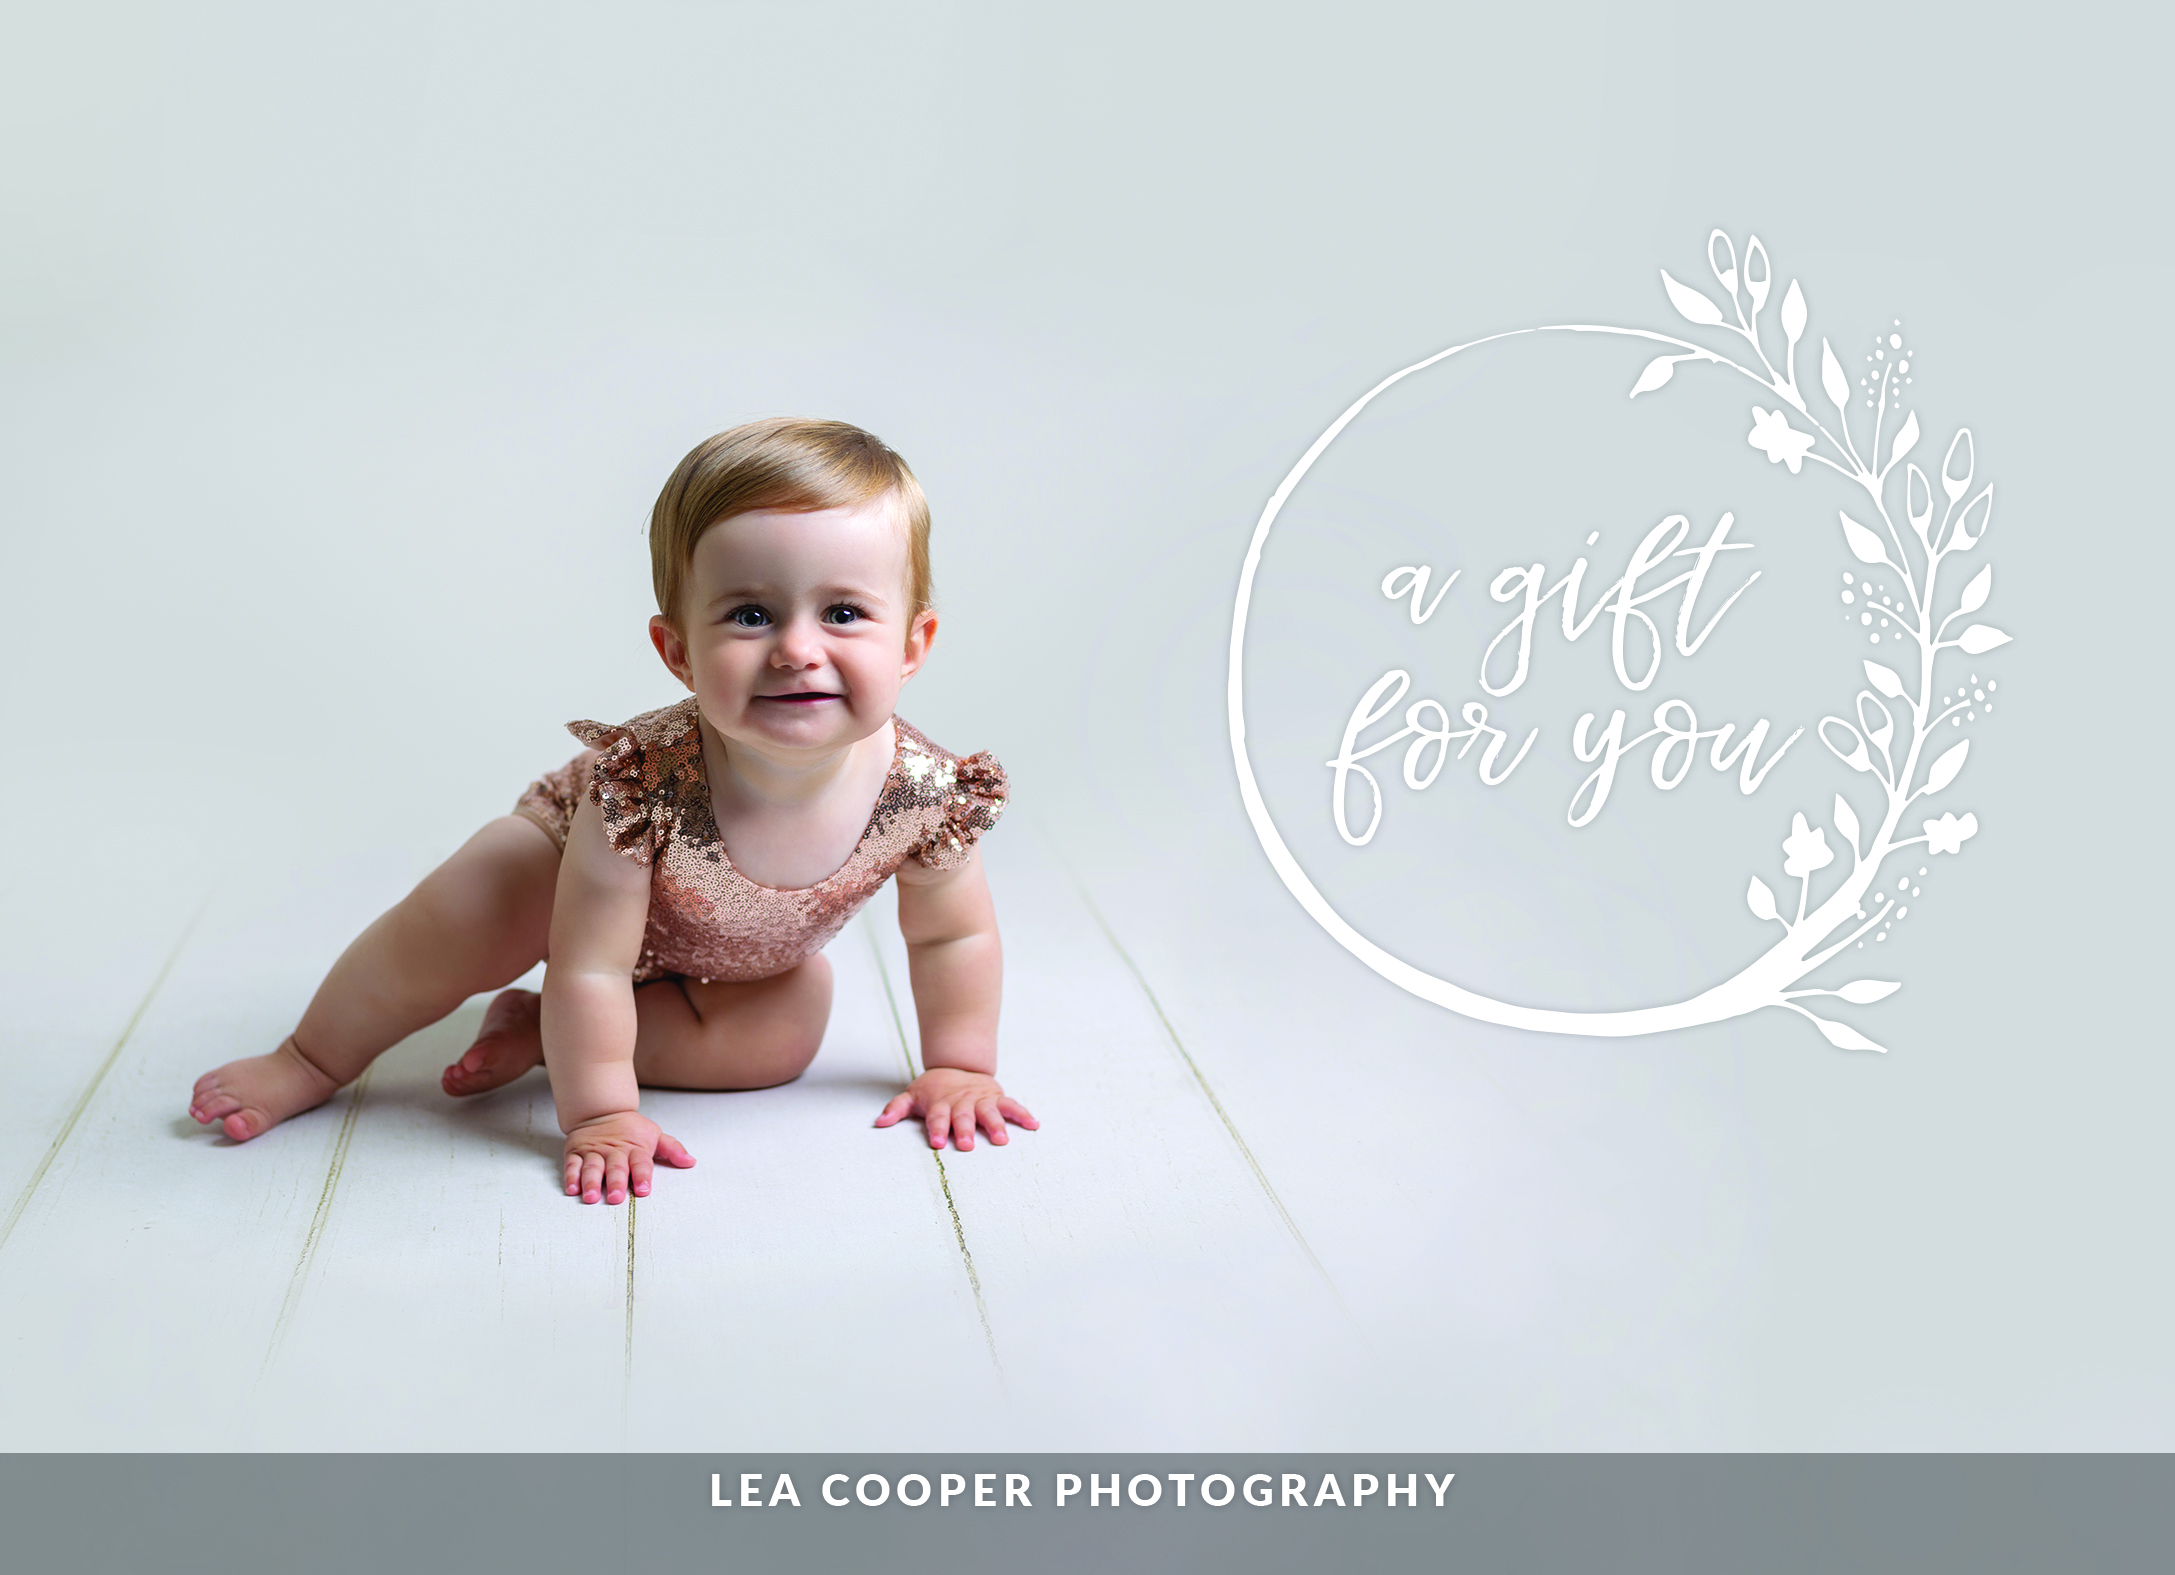 CHRISTMAS_GIVEAWAY_WIN_A_GIFT_CERTIFICATE_LEA_COOPER_PHOTOGRAPHY_WILLENHALL_WEST-MIDLANDS_WOLVERHAMPTON.jpg